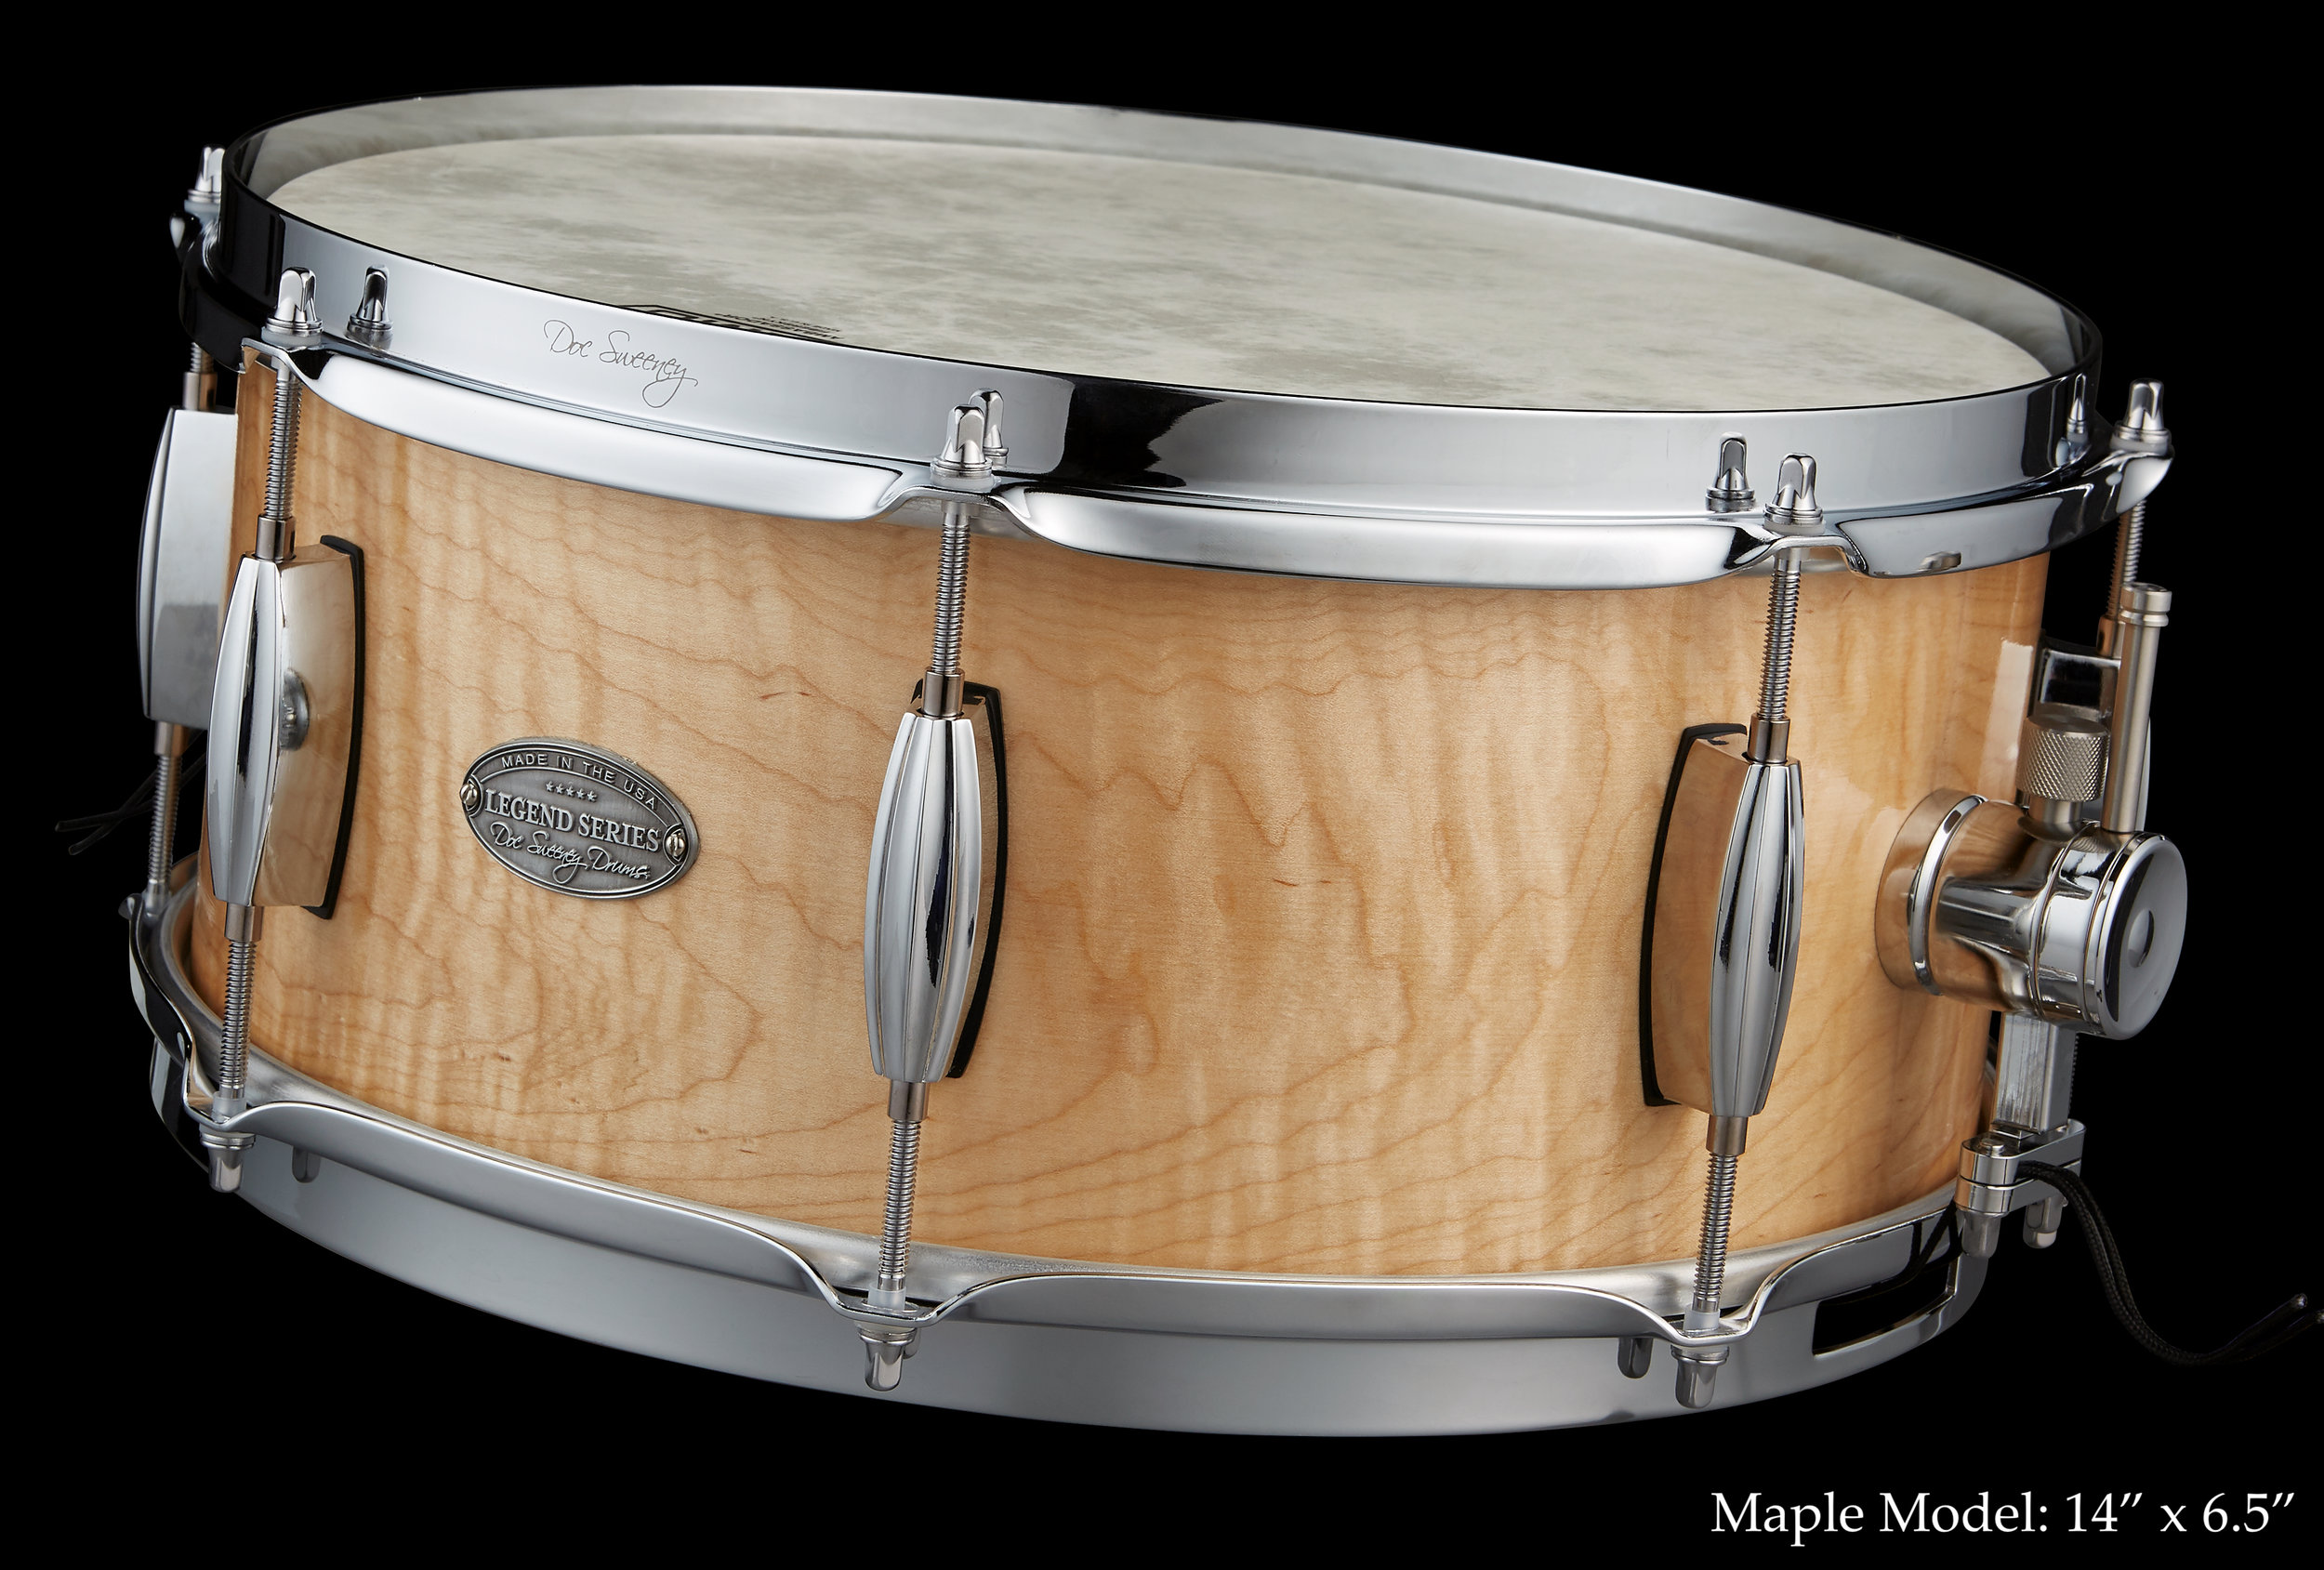 Legend Series - We've long been admirers of the steam bent snares created in the 1920s — 1940s by legendary builders like Leedy and Slingerland. As a tribute to one of the most admired snare drums of the 20th century, Doc Sweeney Drums is proud to introduce a contemporary take on an American classic with our steam bent shell, eight lug snares we call the Legend Series.By blending our CNC milled solid wood shell and DS1 strainer with vintage style beavertail lugs and classic hoops, we're offering drummers a blast from the past with the benefits of new technology.